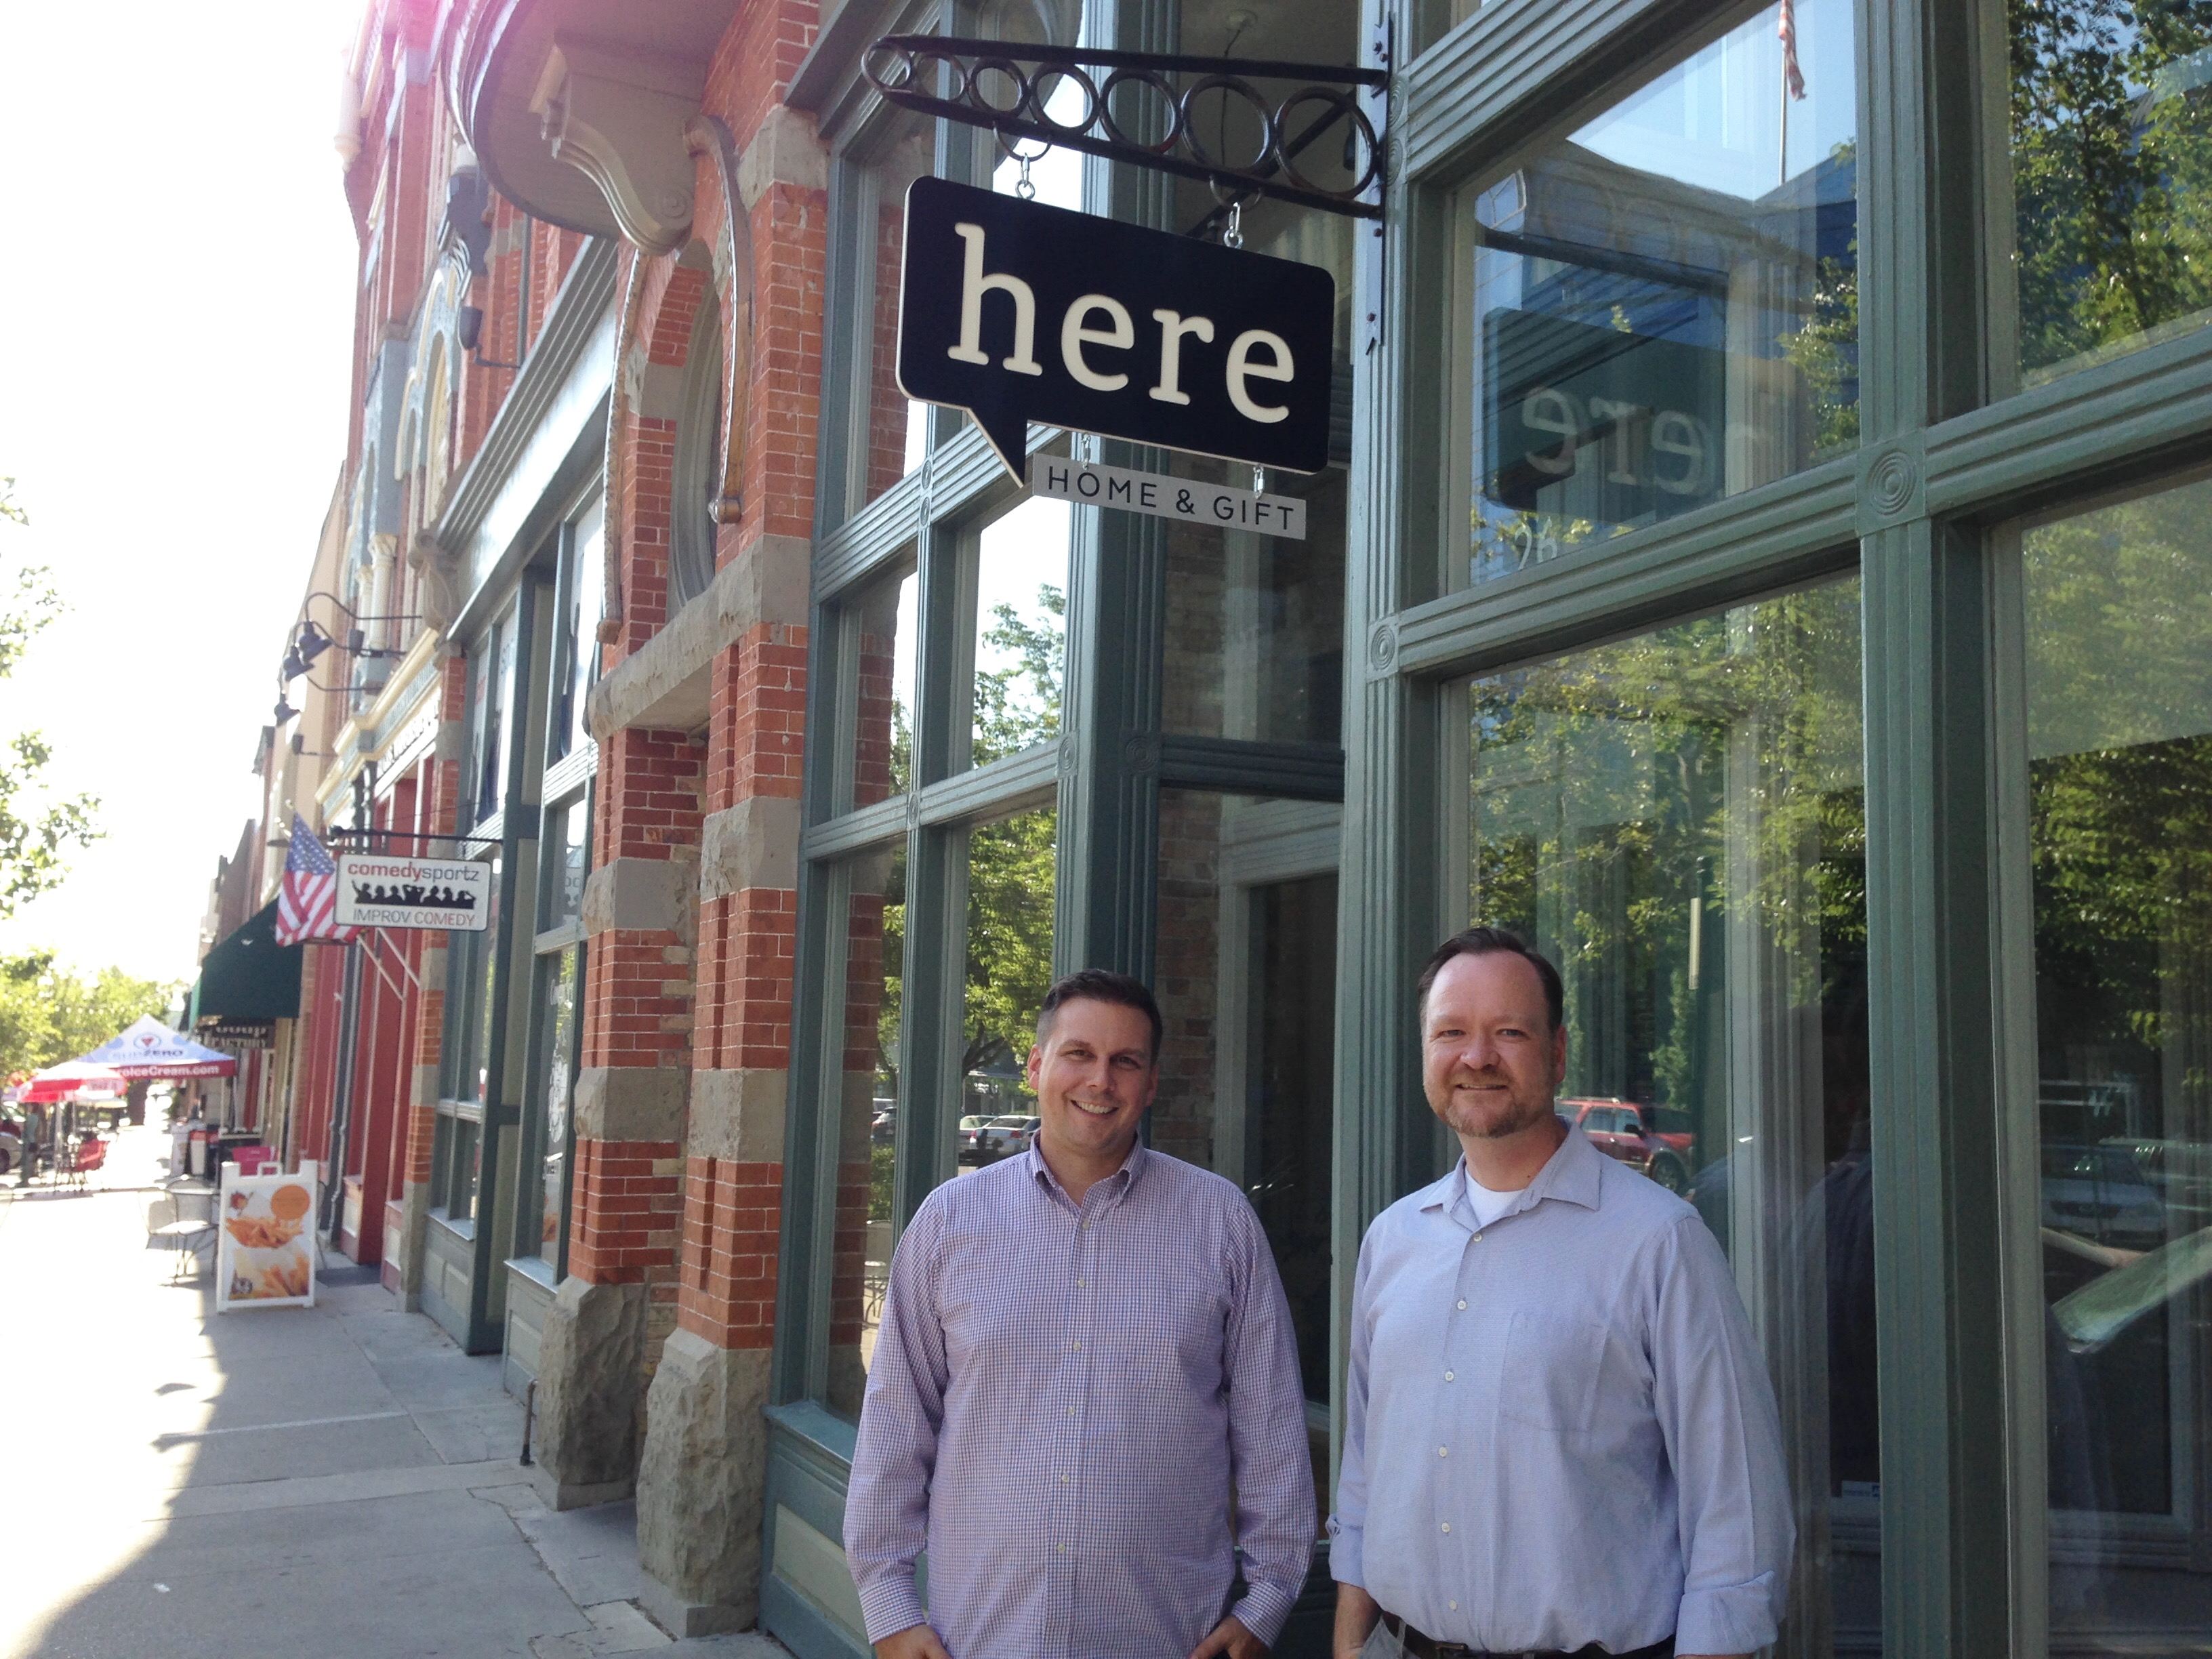 Here Provo owners Scott Campbell, left, and Jed Platt seek to offer a gathering place and sense of home with Here Provo, their new gift shop that opens Thursday, June 30, on Center Street in Provo. (Photo by Christa Woodall)